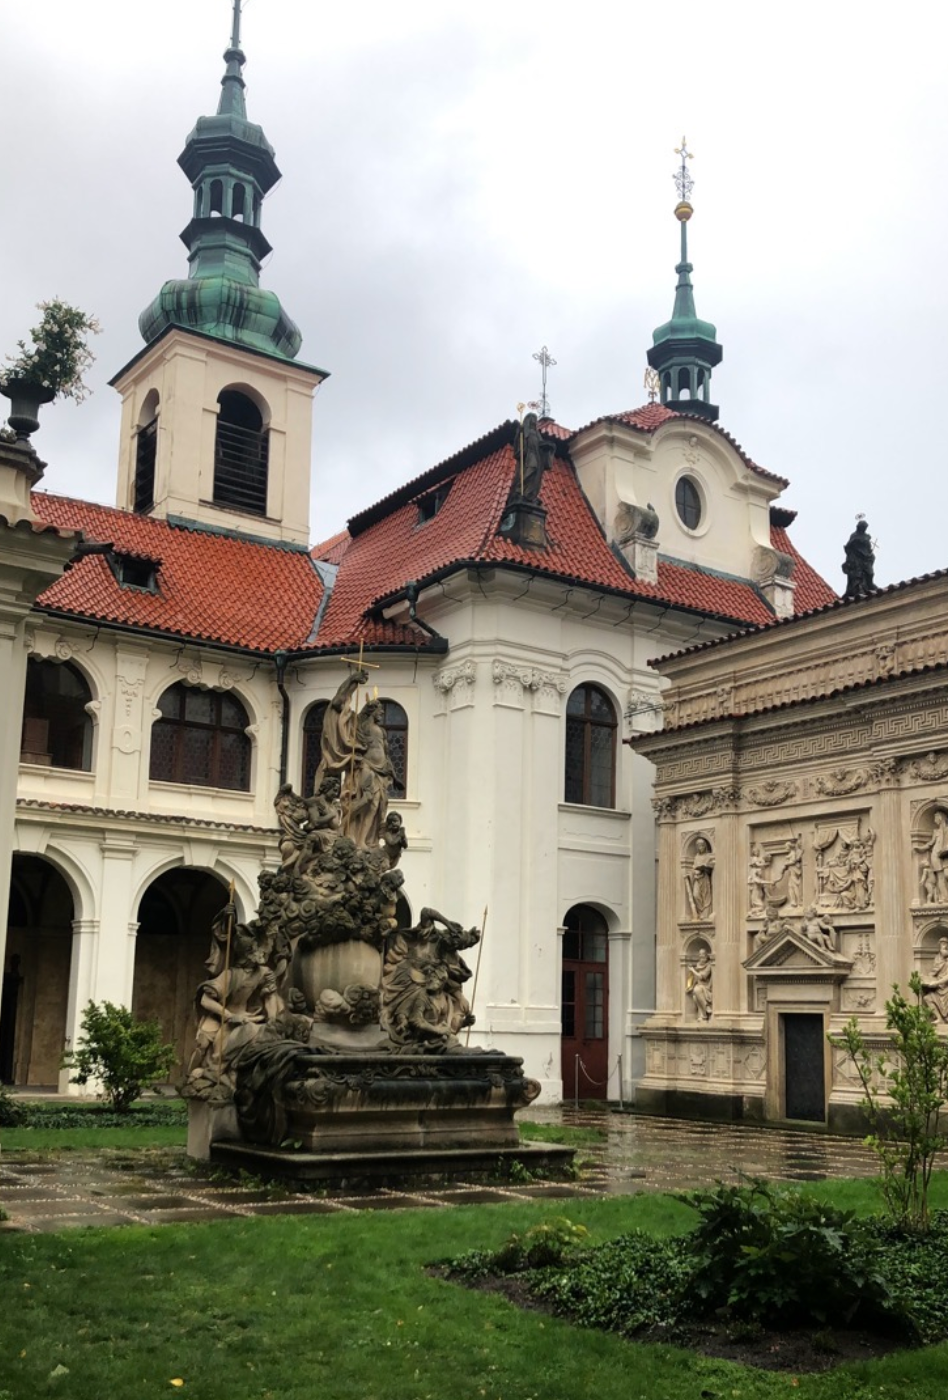 Loreto Church near the Prague Castle. We got to go up to its organ and get a personalized demo during one of our architecture walks!